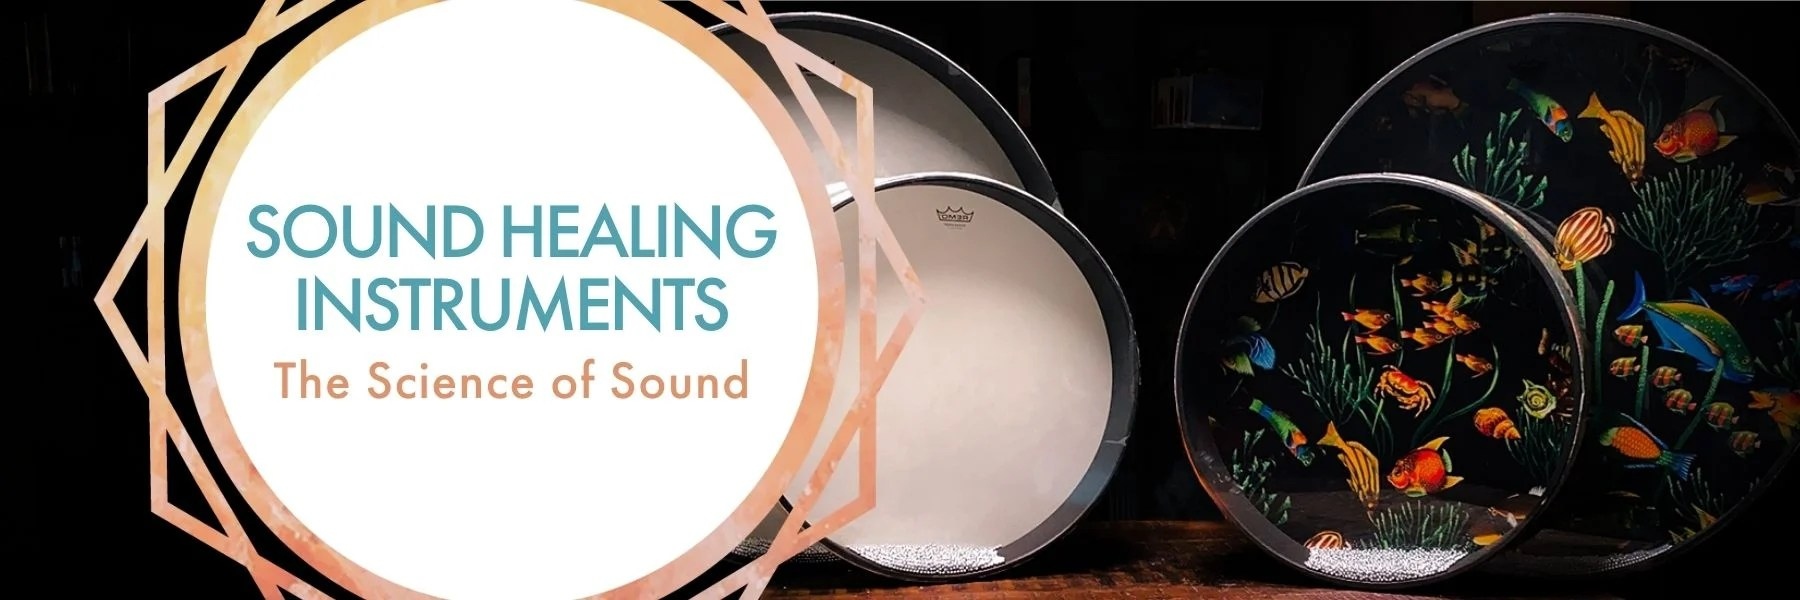 ound Healing Instruments: The Science of Sound; colorful and white ocean drums on black backdrop